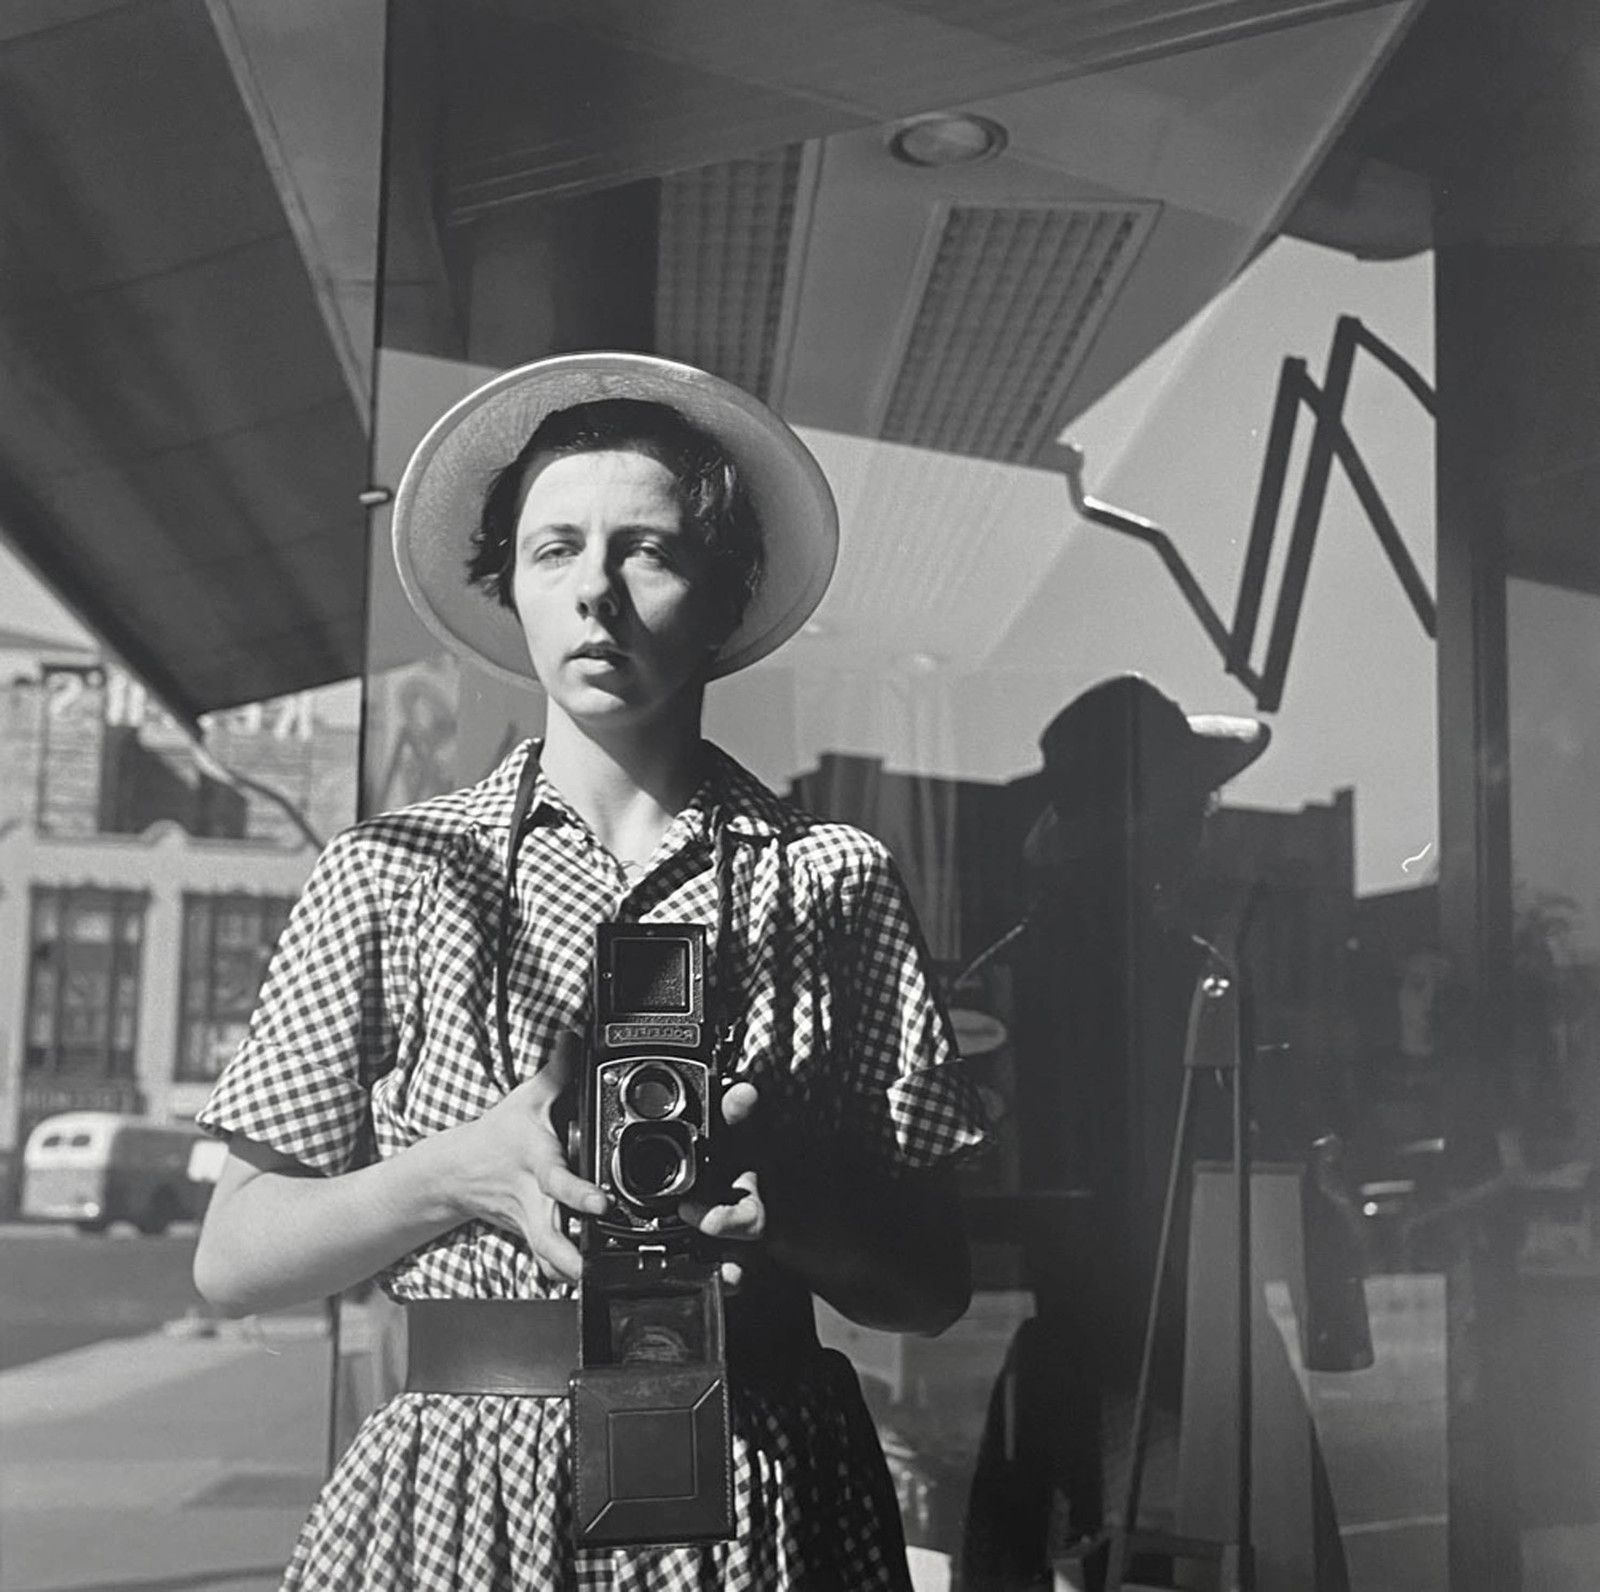 """Self-portrait"", 1954 de Vivian MAIER - Courtesy Les Douches la Galerie Paris"